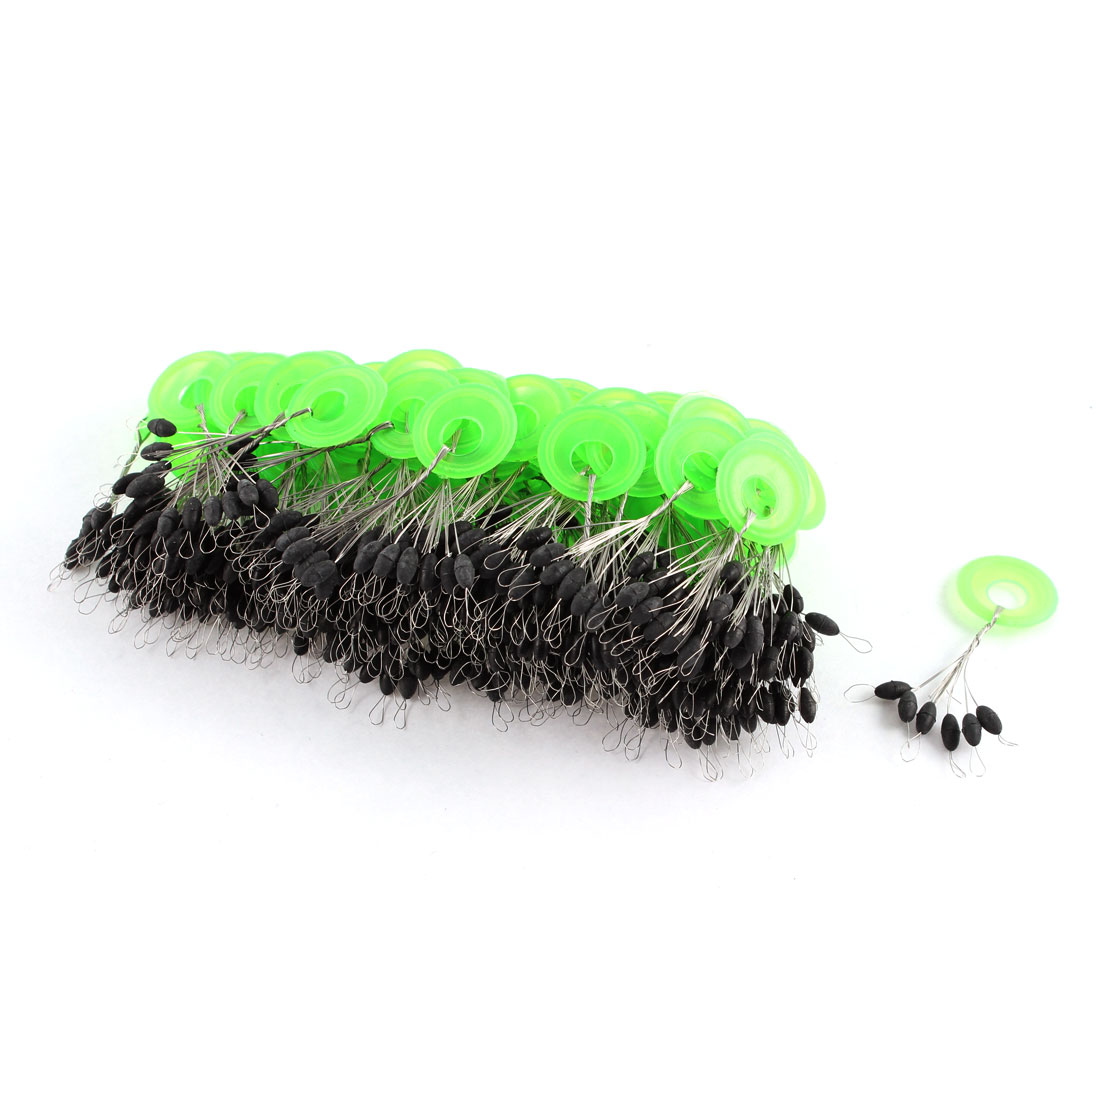 Click here to buy Unique Bargains 6 in 1 Soft Rubber Fishing Floaters Bobbers 6mm Long 100 Pcs by Unique-Bargains.